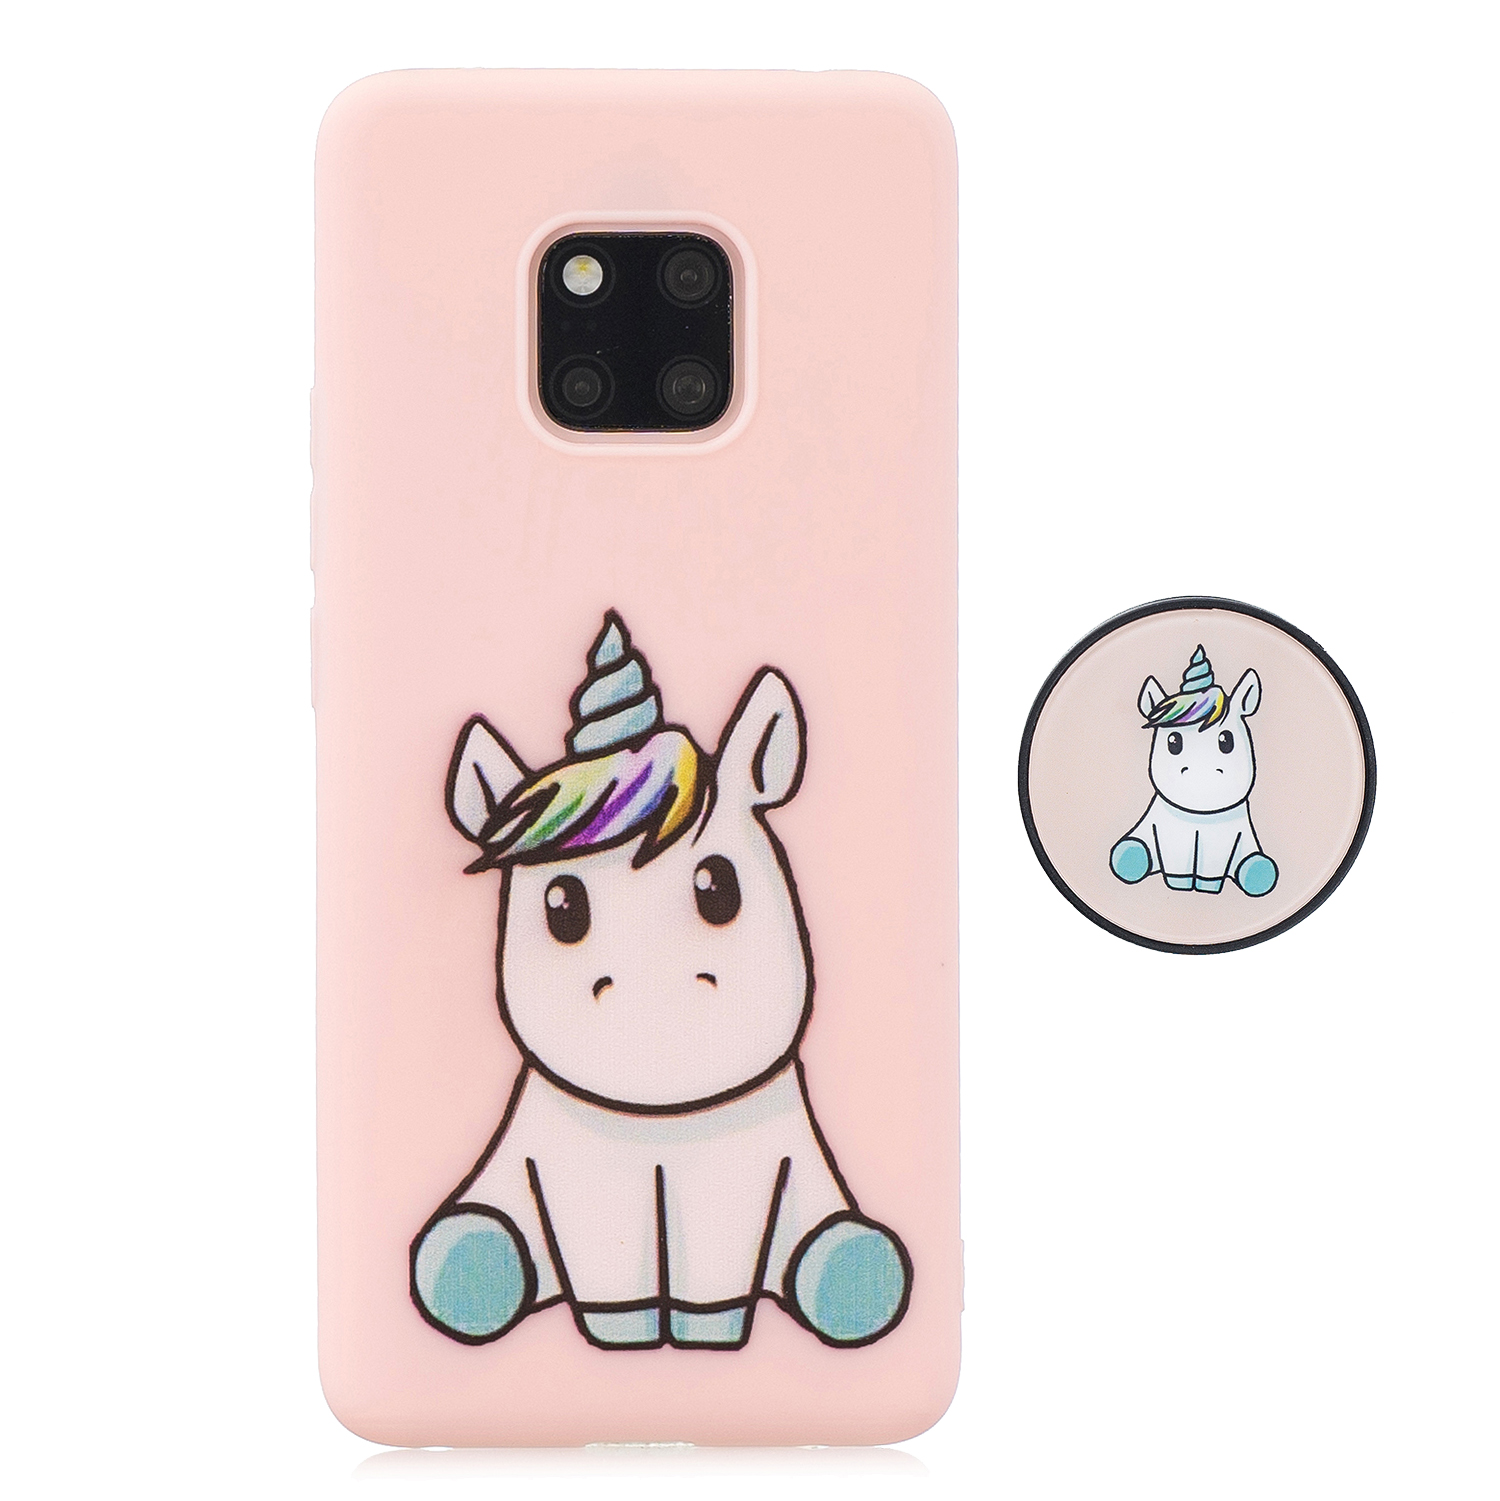 For HUAWEI MATE 20 pro Pure Color Phone Cover Cute Cartoon Phone Case Lightweight Soft TPU Phone Case with Matching Pattern Adjustable Bracket 6